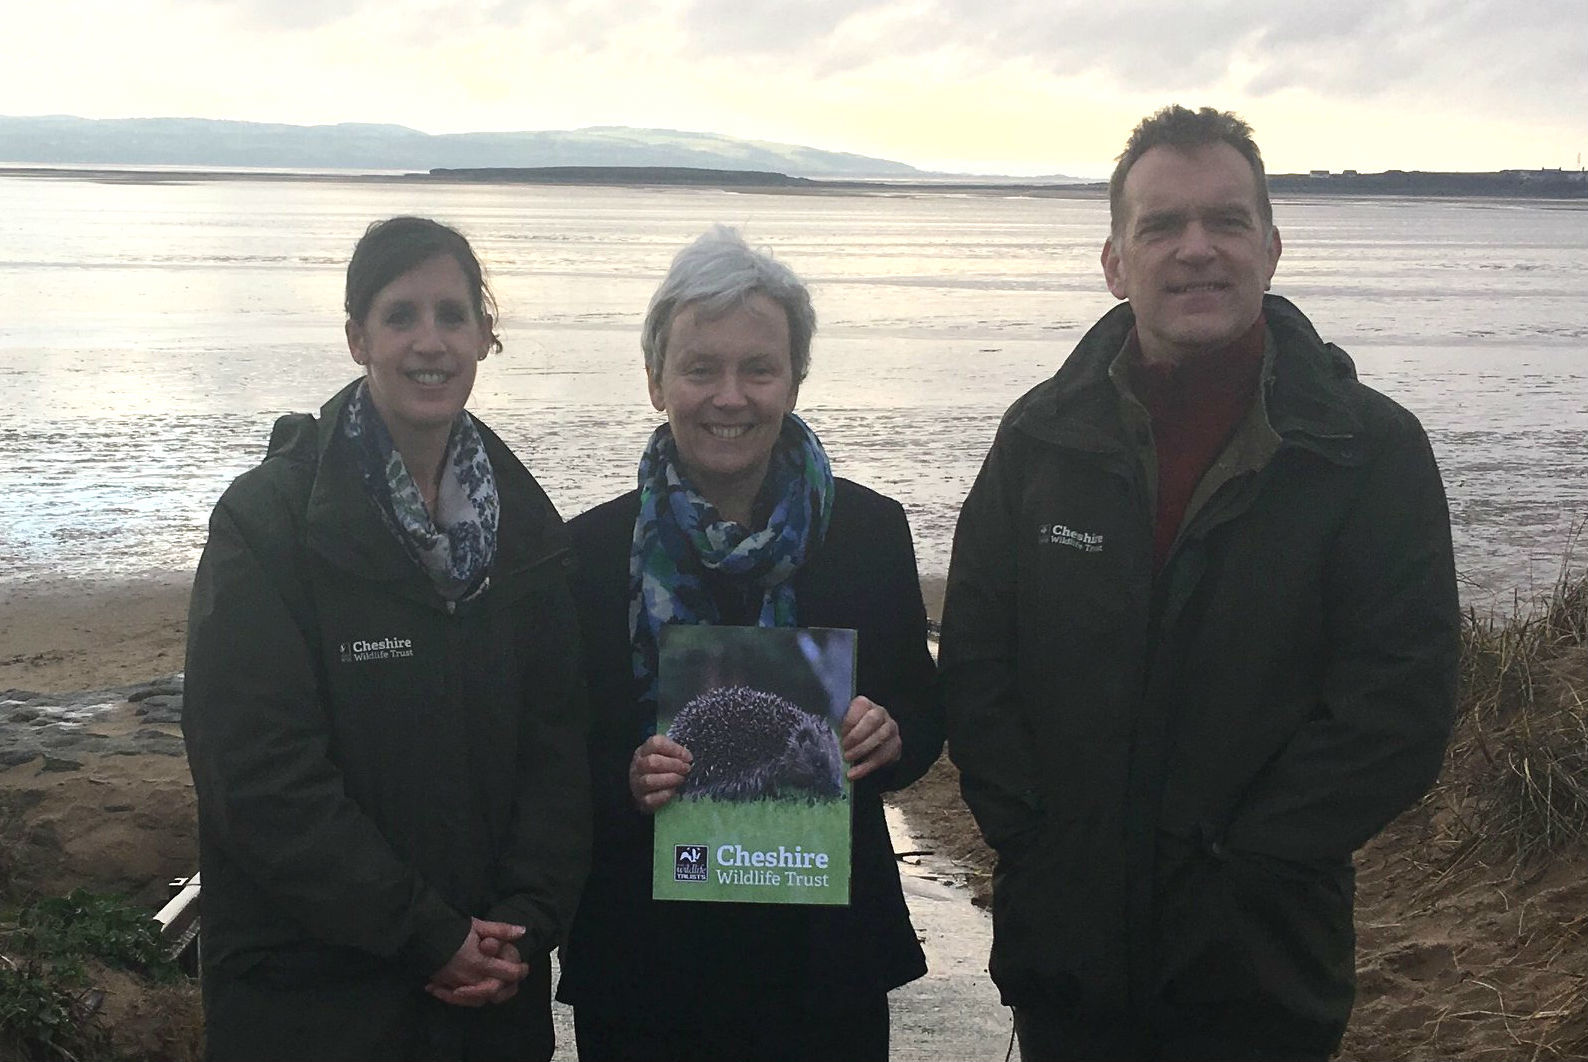 Margaret Greenwood MP with Martin Varley and Sarah Bennett from the Cheshire Wildlife Trust